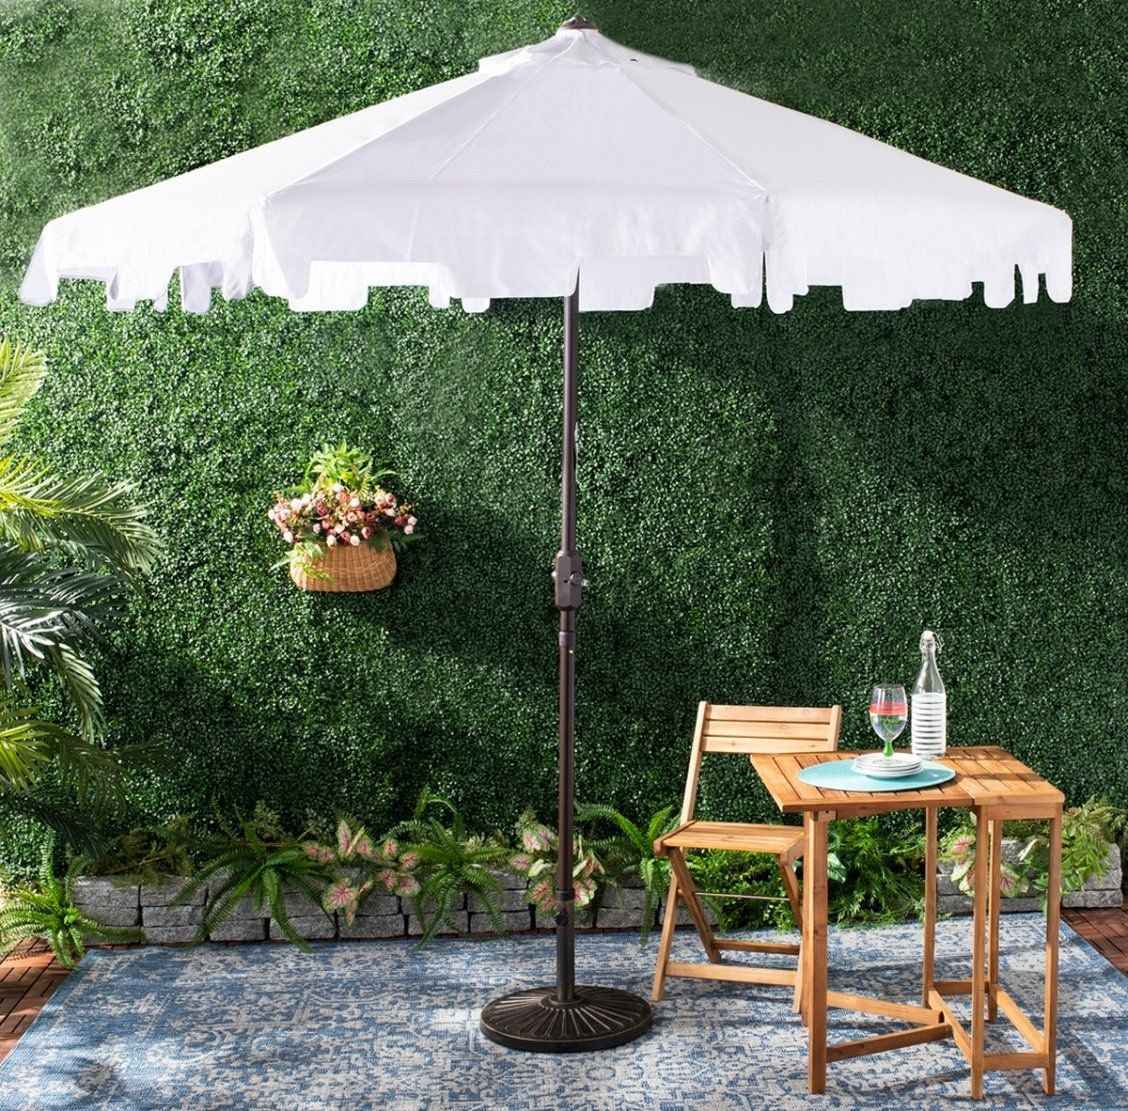 A Classic Market Umbrella Gets A Chic Makeover With Fashion